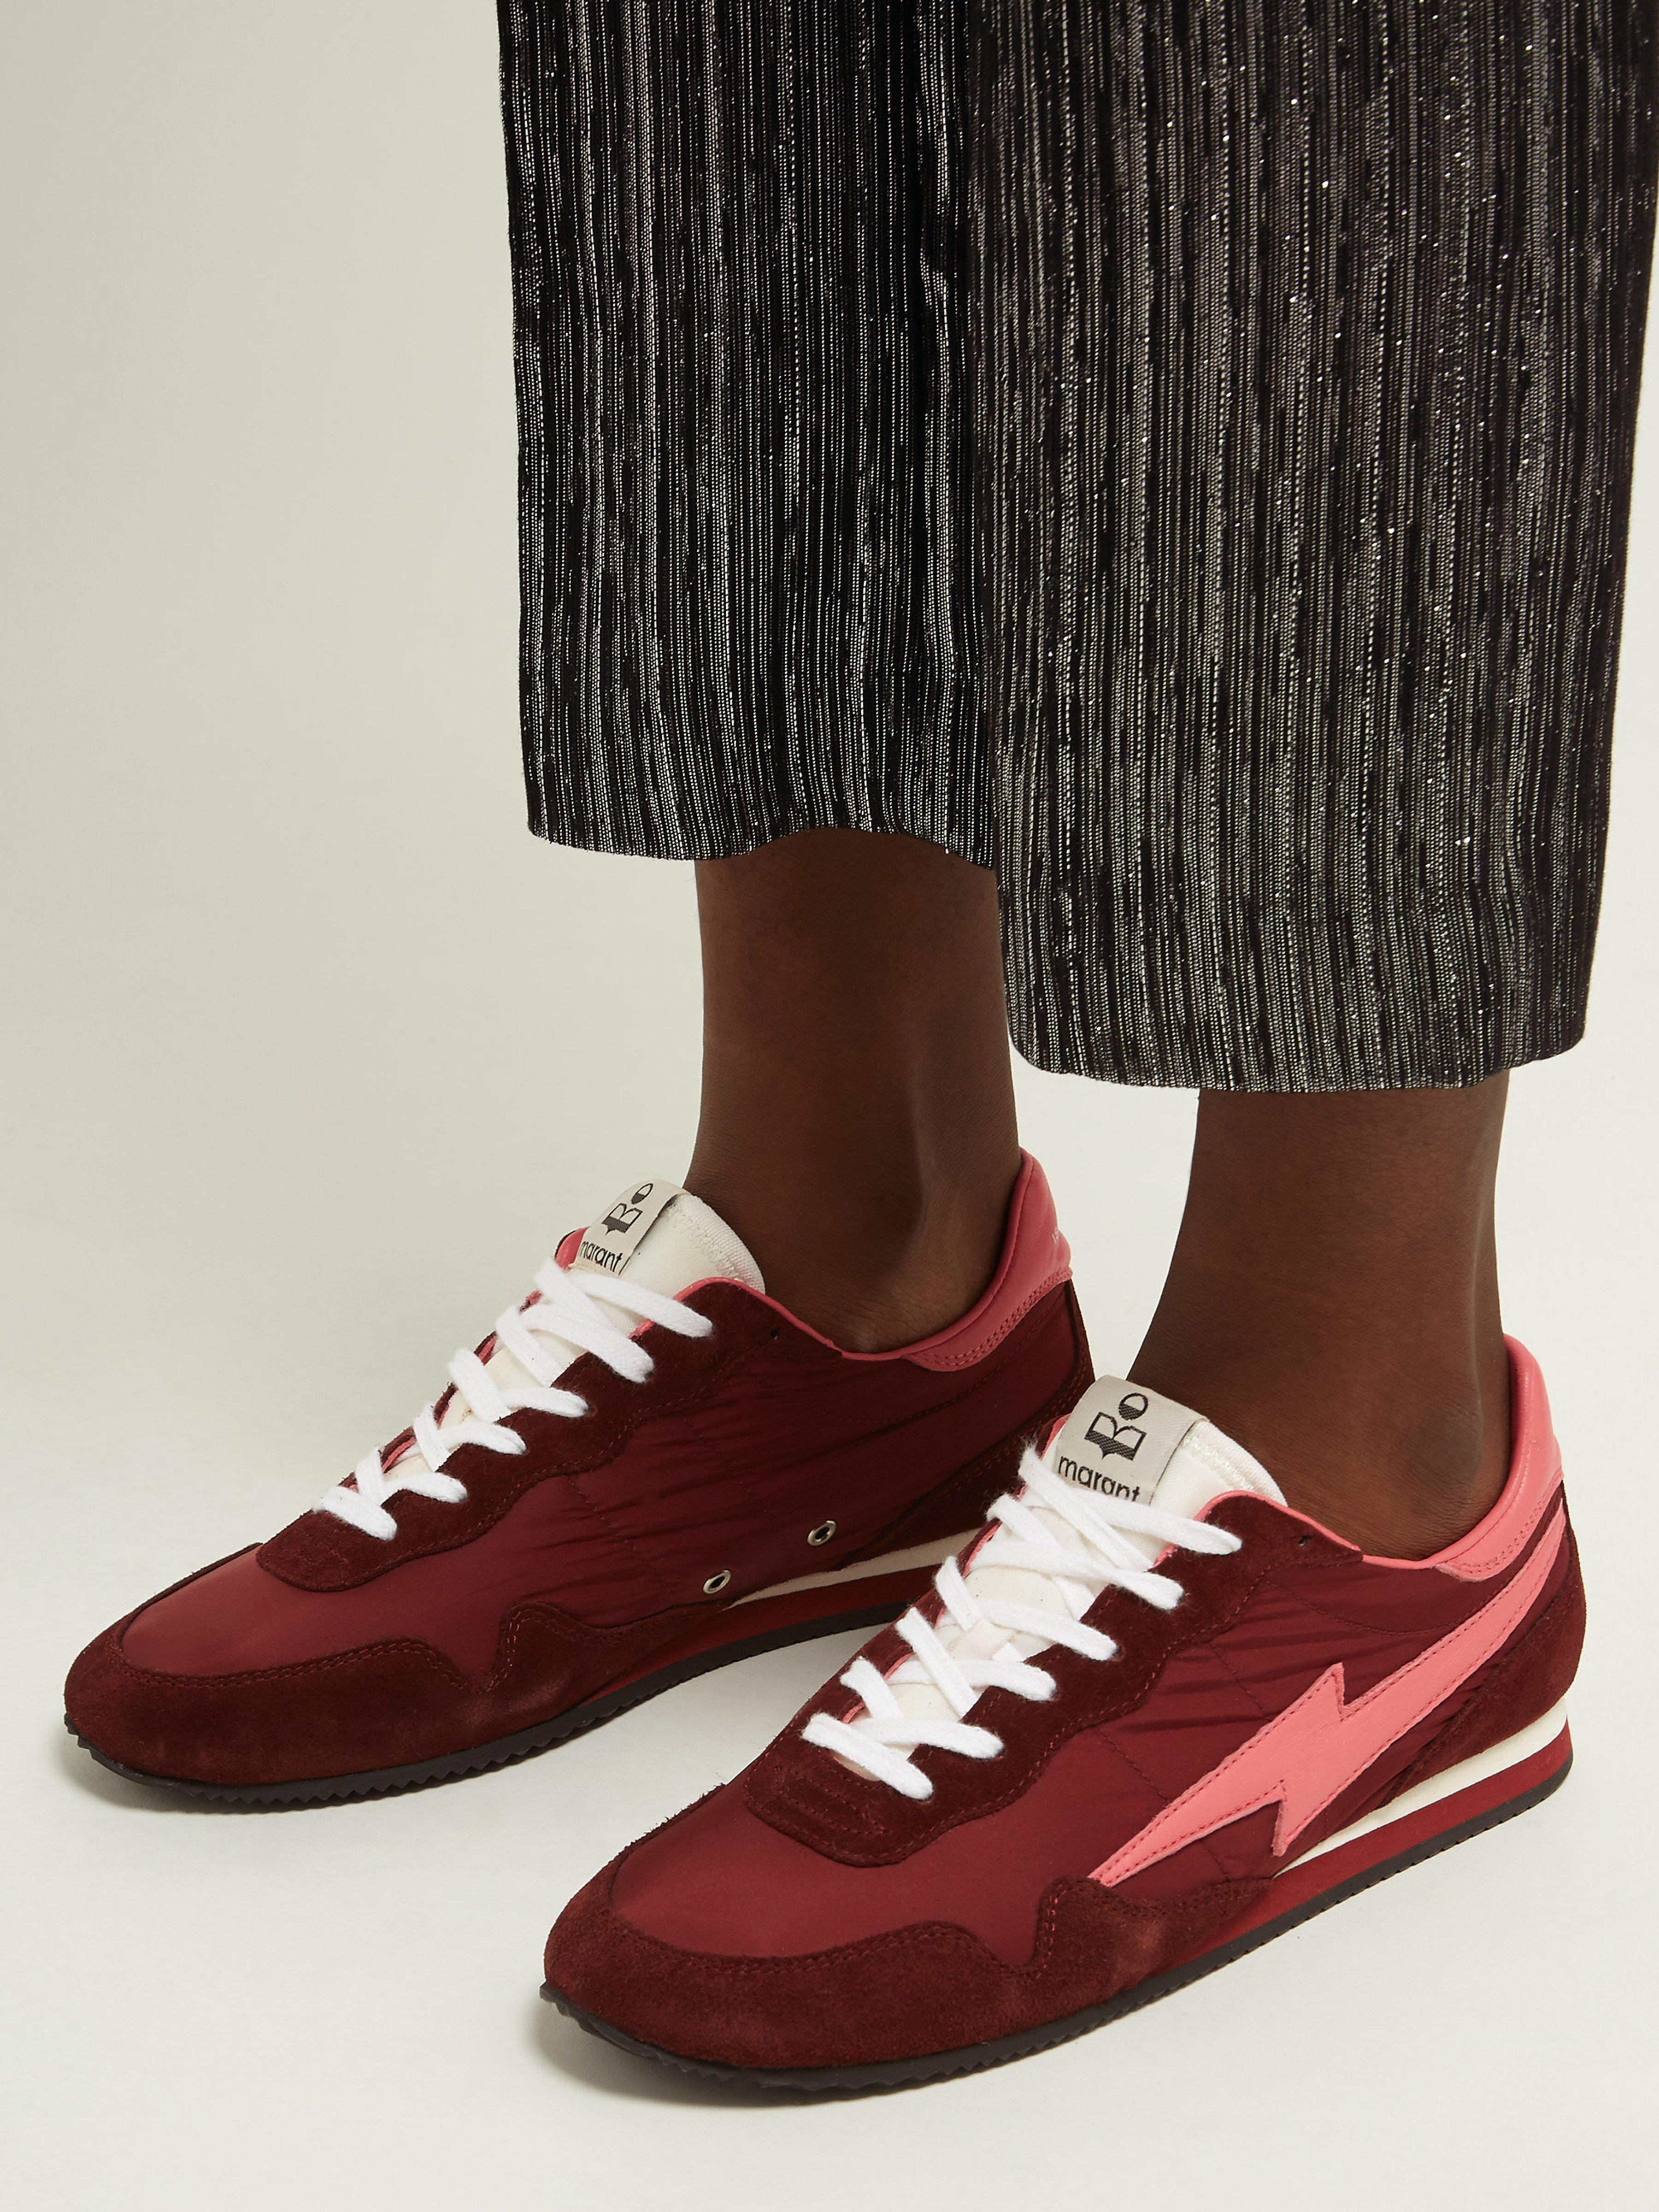 297dcbbfff2 Isabel Marant - Multicolor Bustee Lightning Bolt Leather And Suede Trainers  - Lyst. View fullscreen